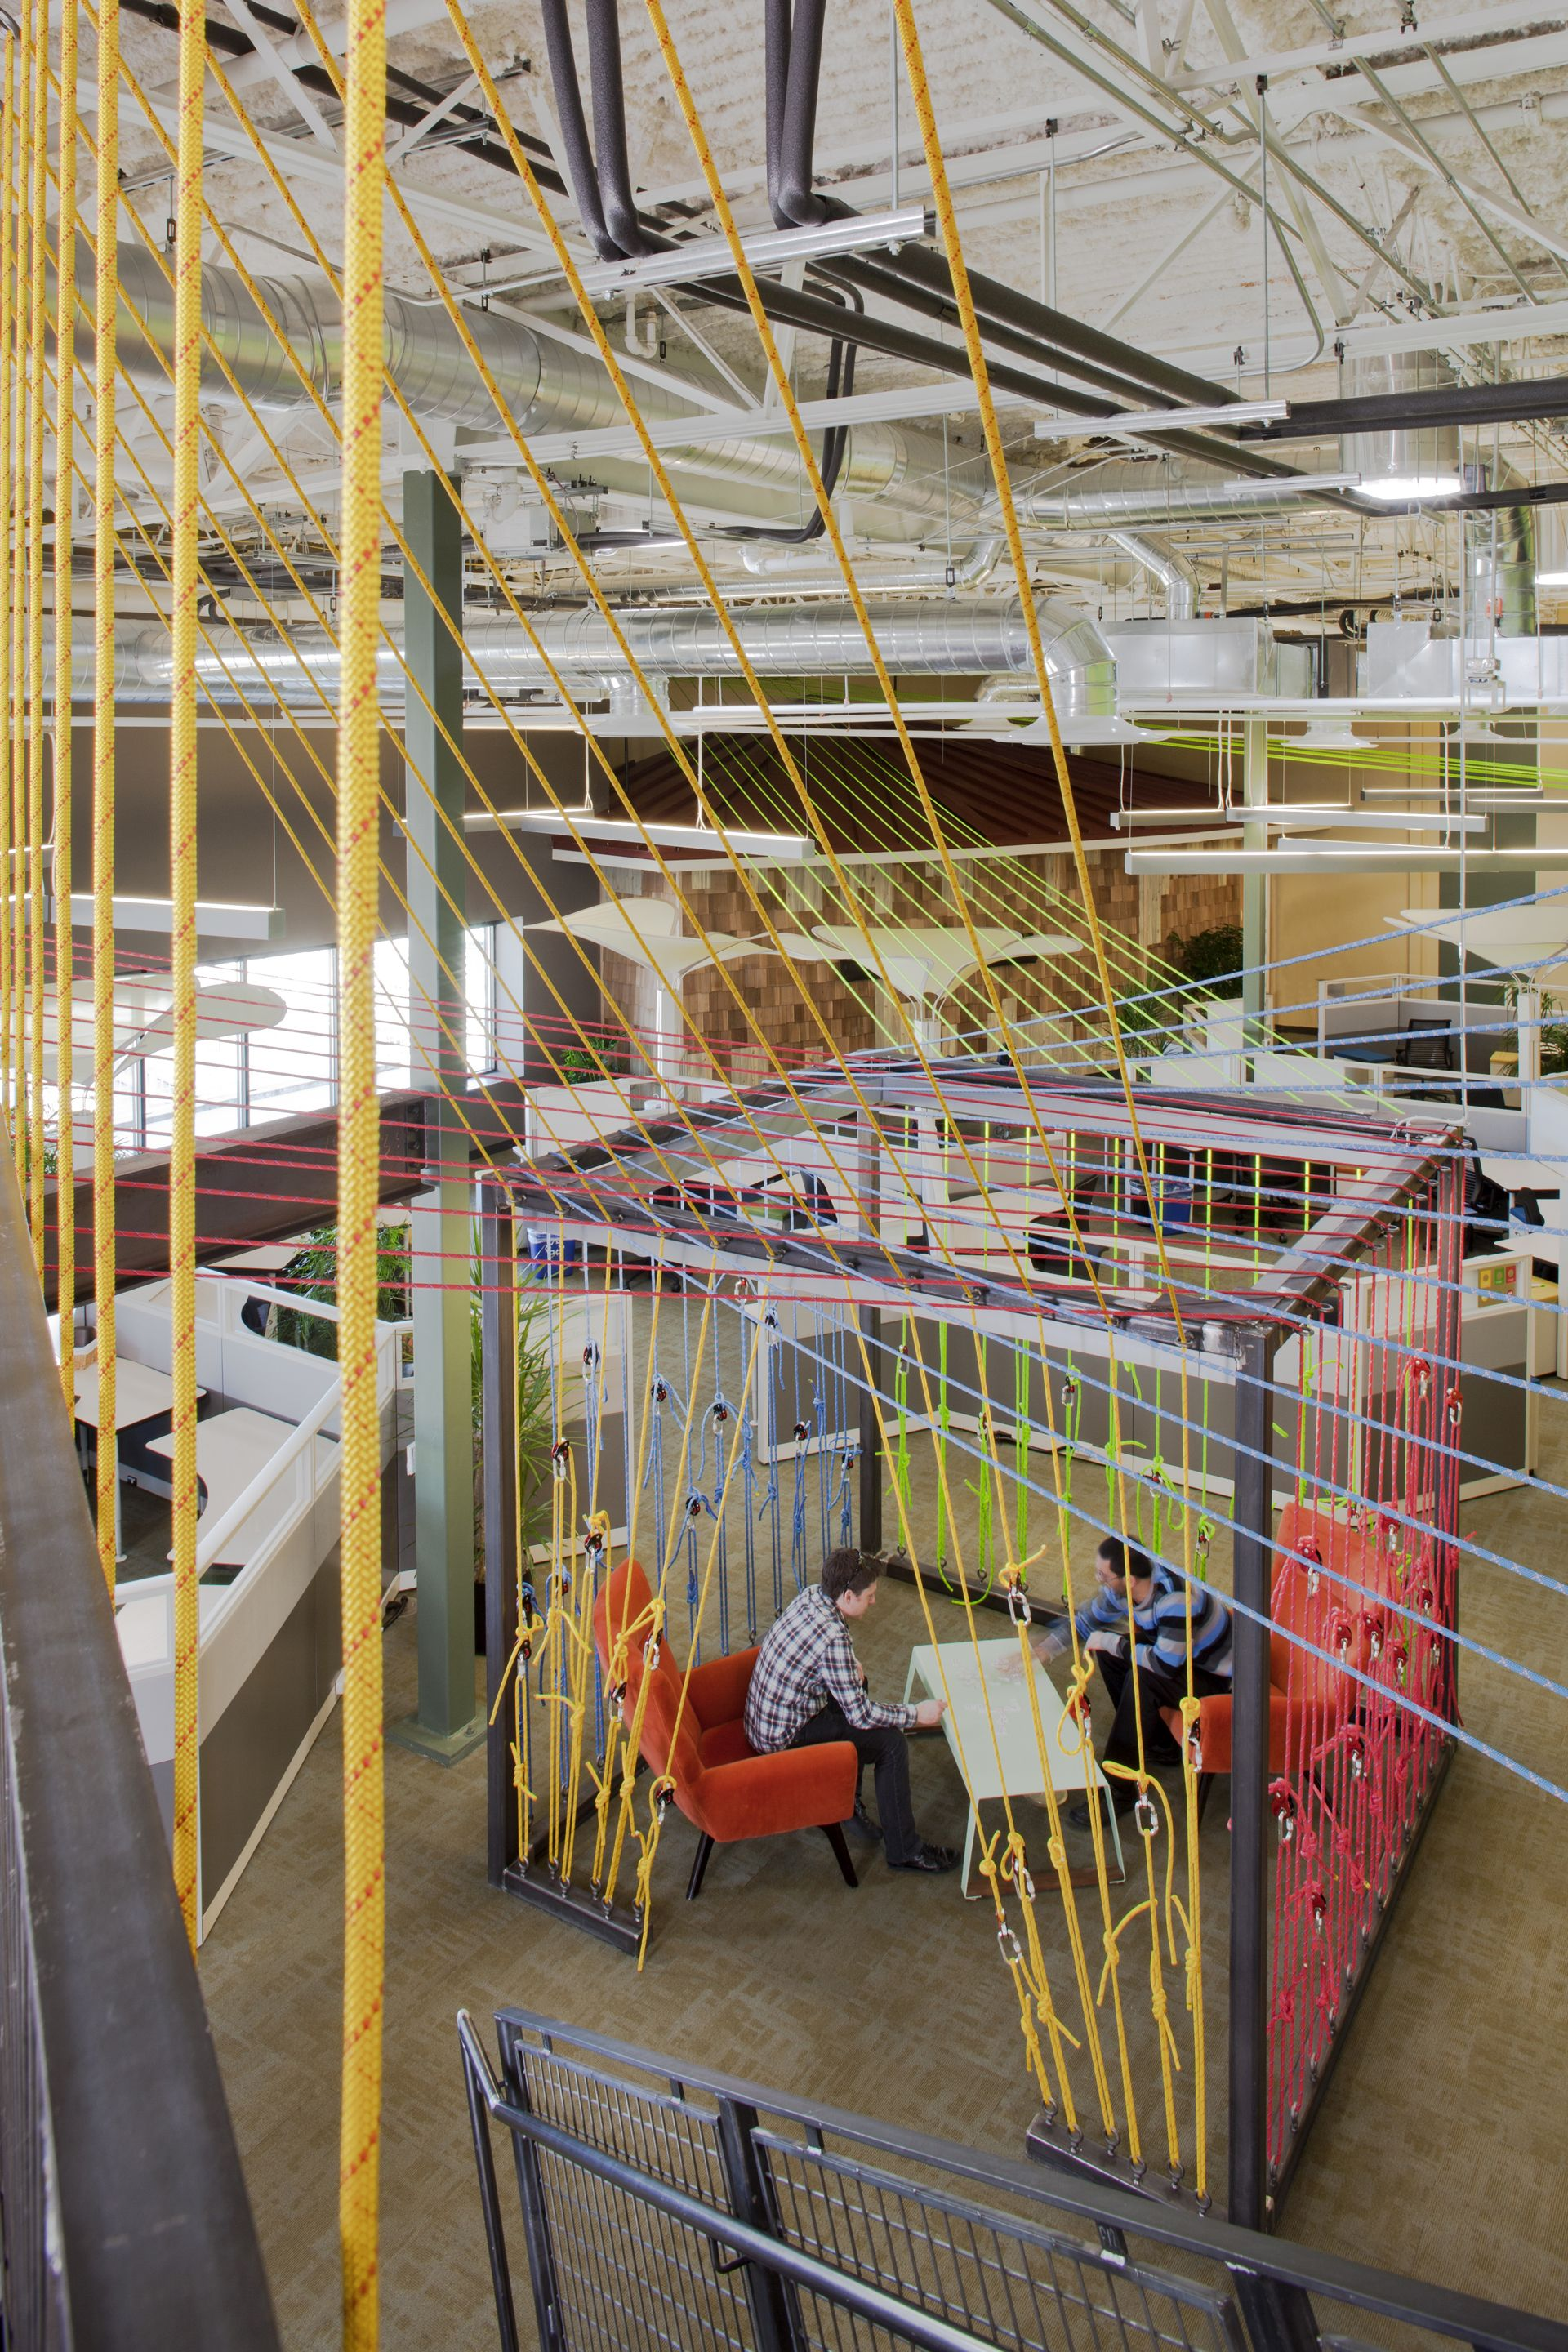 Google office environment Bean Bag What Playful Work Environment googles office In Boulder Envisioned By Architect Rnl Design And Built By swinerton Builders Is Definitely Creative Pinterest What Playful Work Environment googles office In Boulder